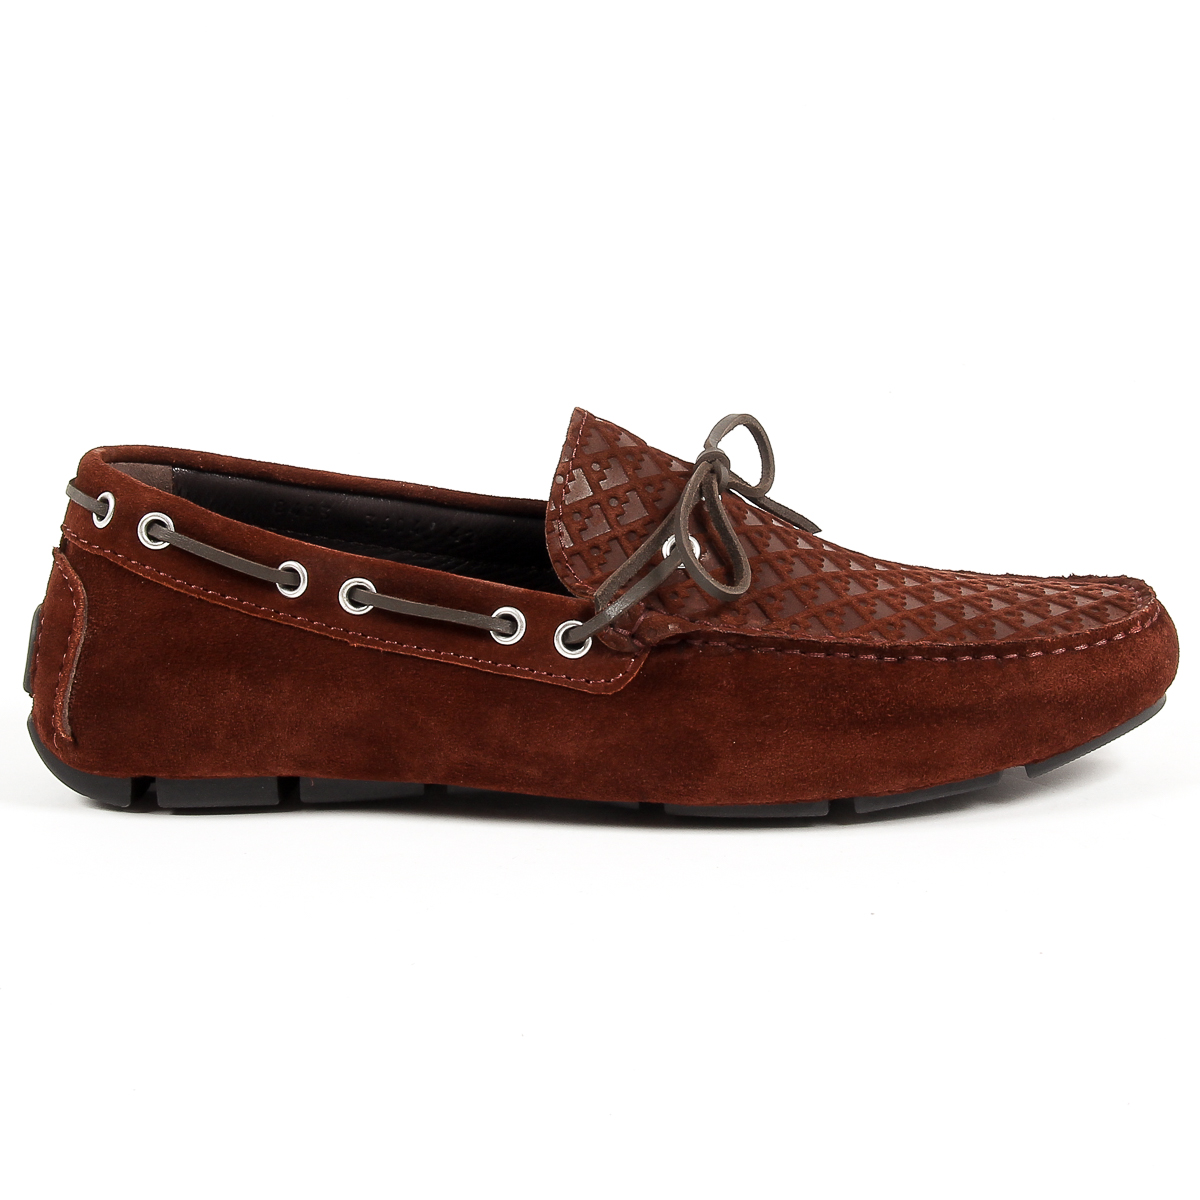 Primary image for V 1969 Italia Mens Loafer Bordeaux KARL